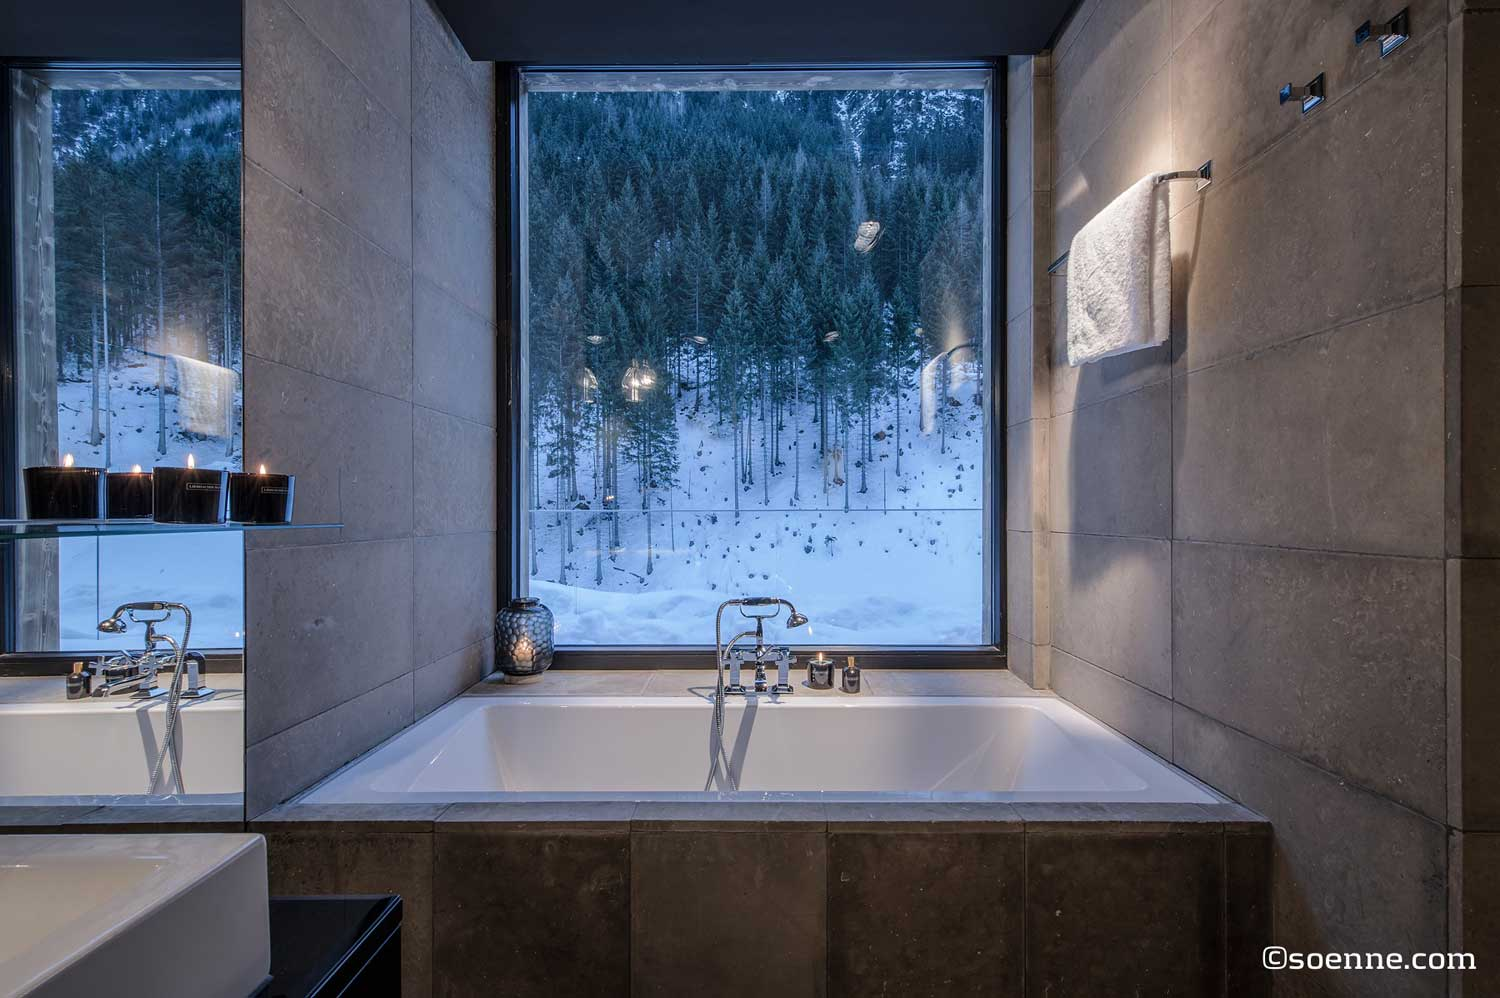 - 23-presidental-suite-bath-tube-in-front-of-window